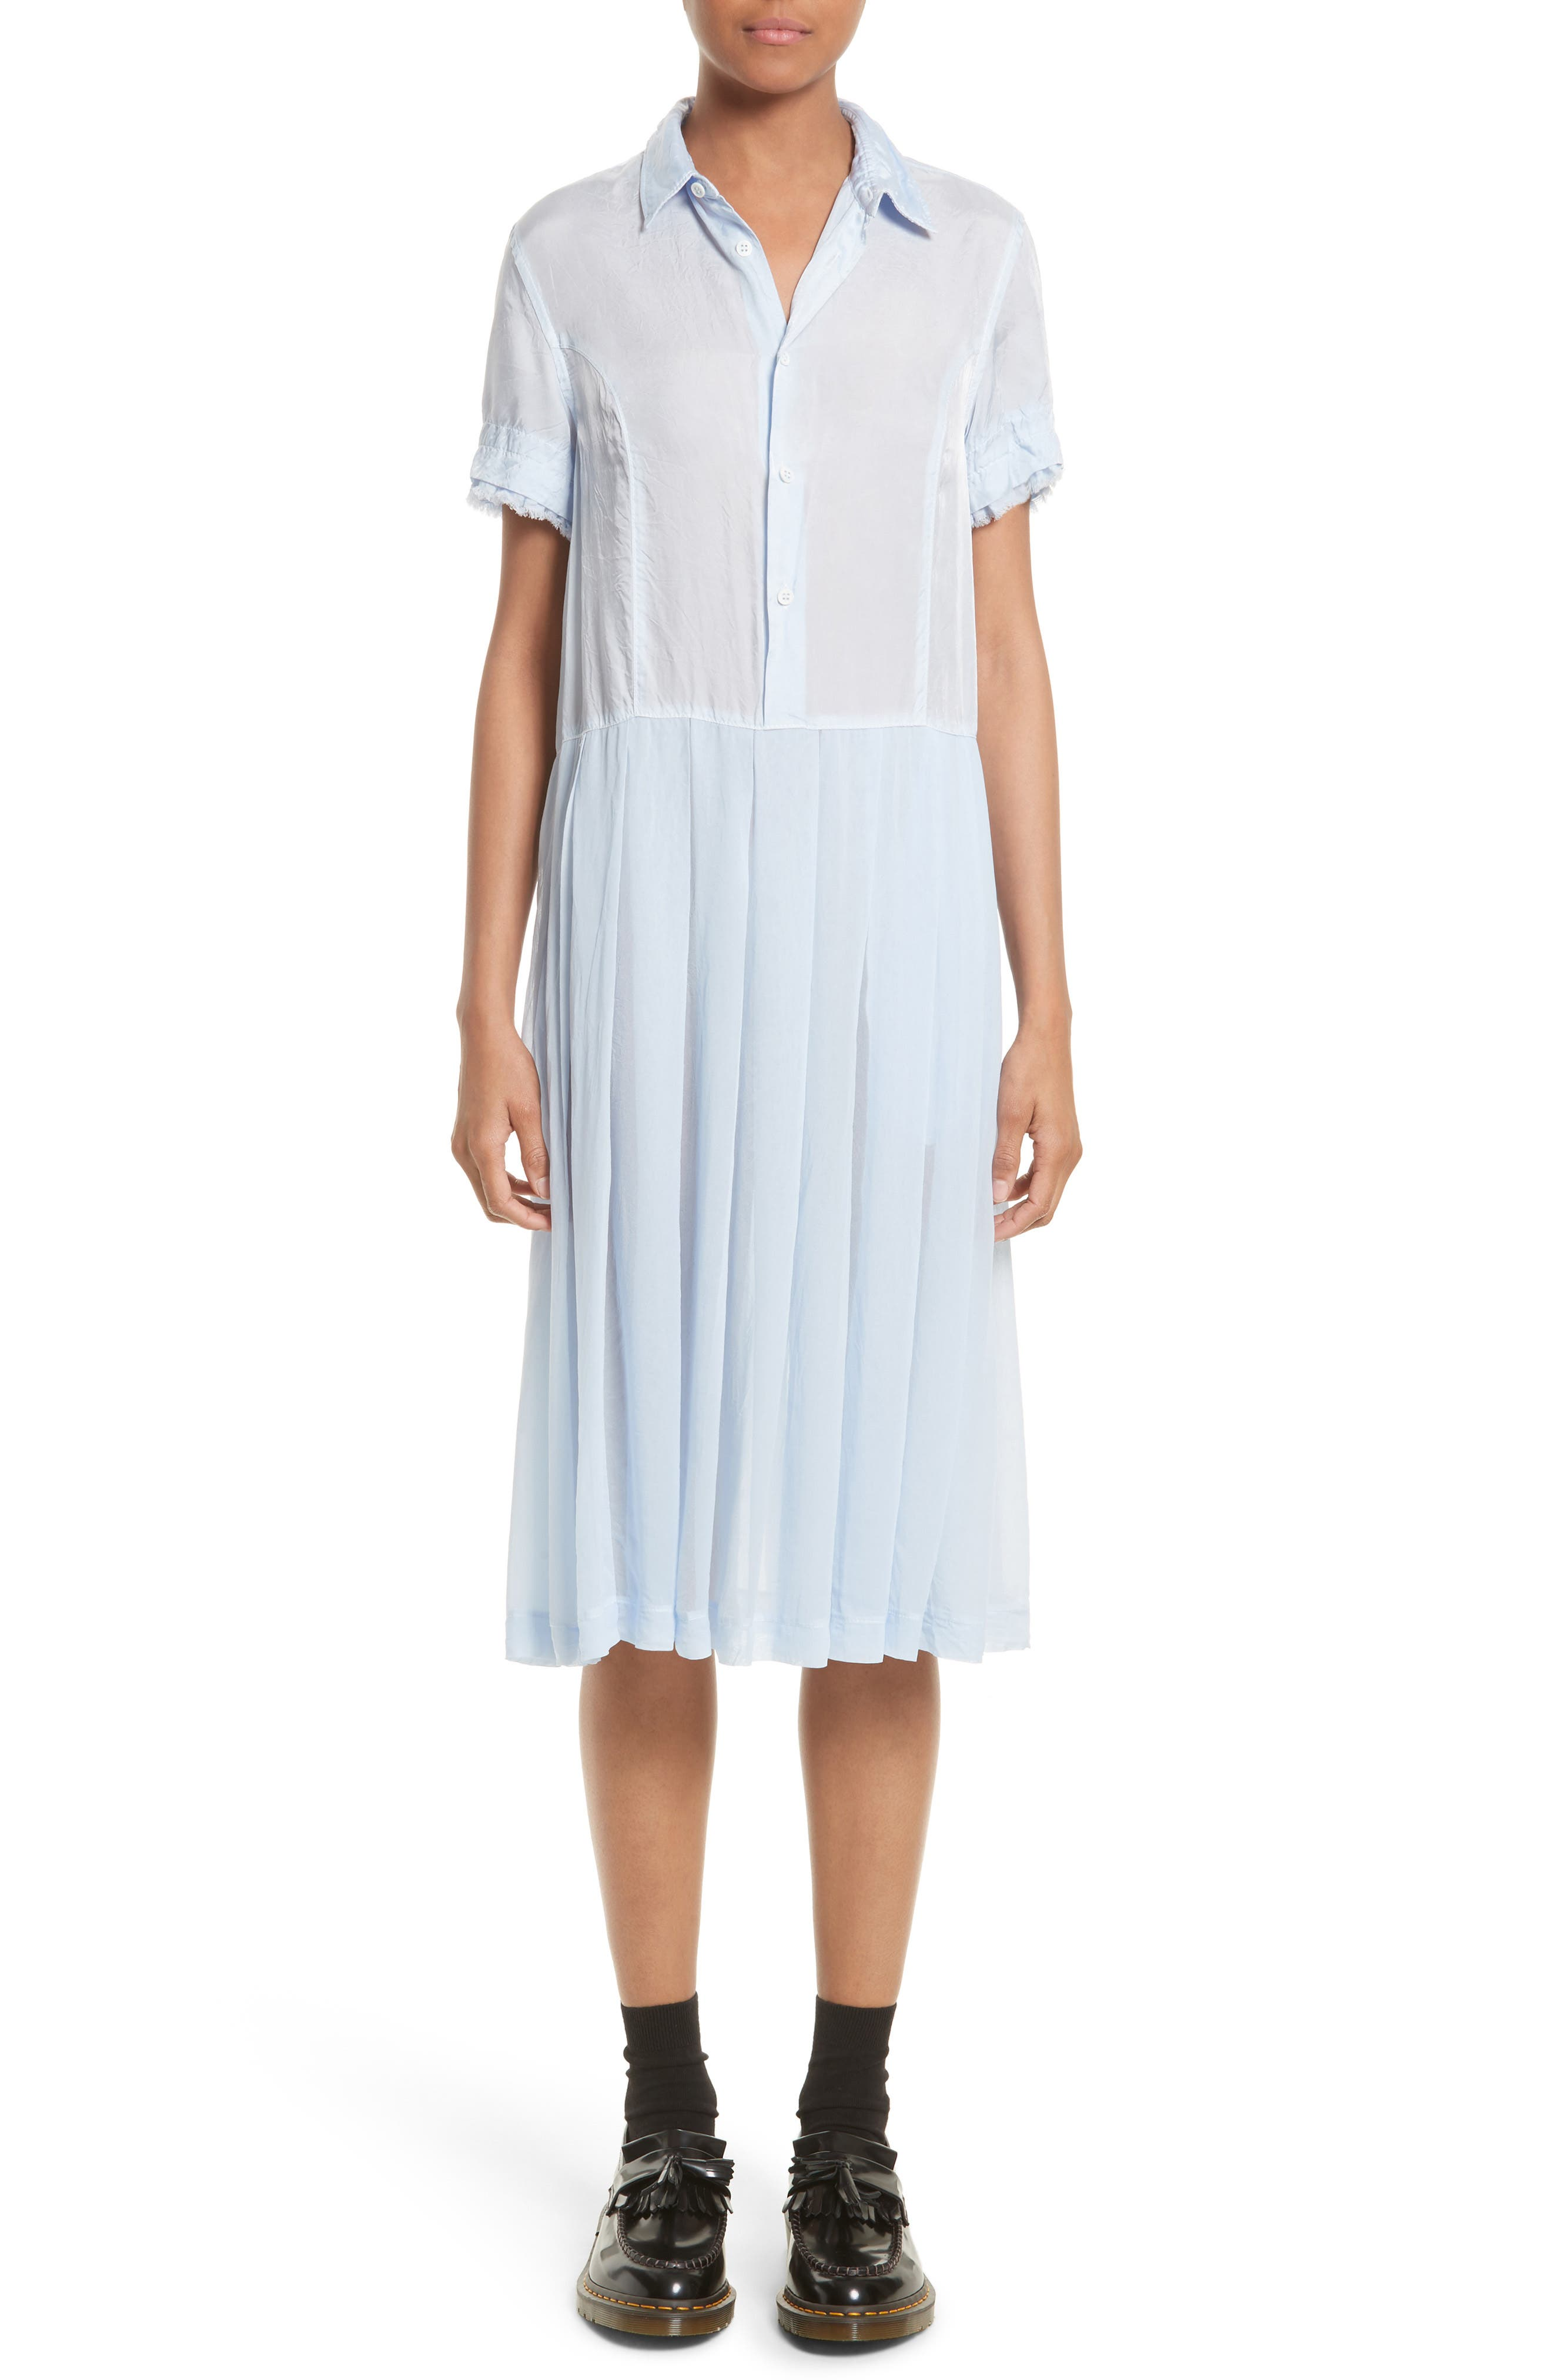 TRICOT COMME DES GARCONS Shirtdress in Sax